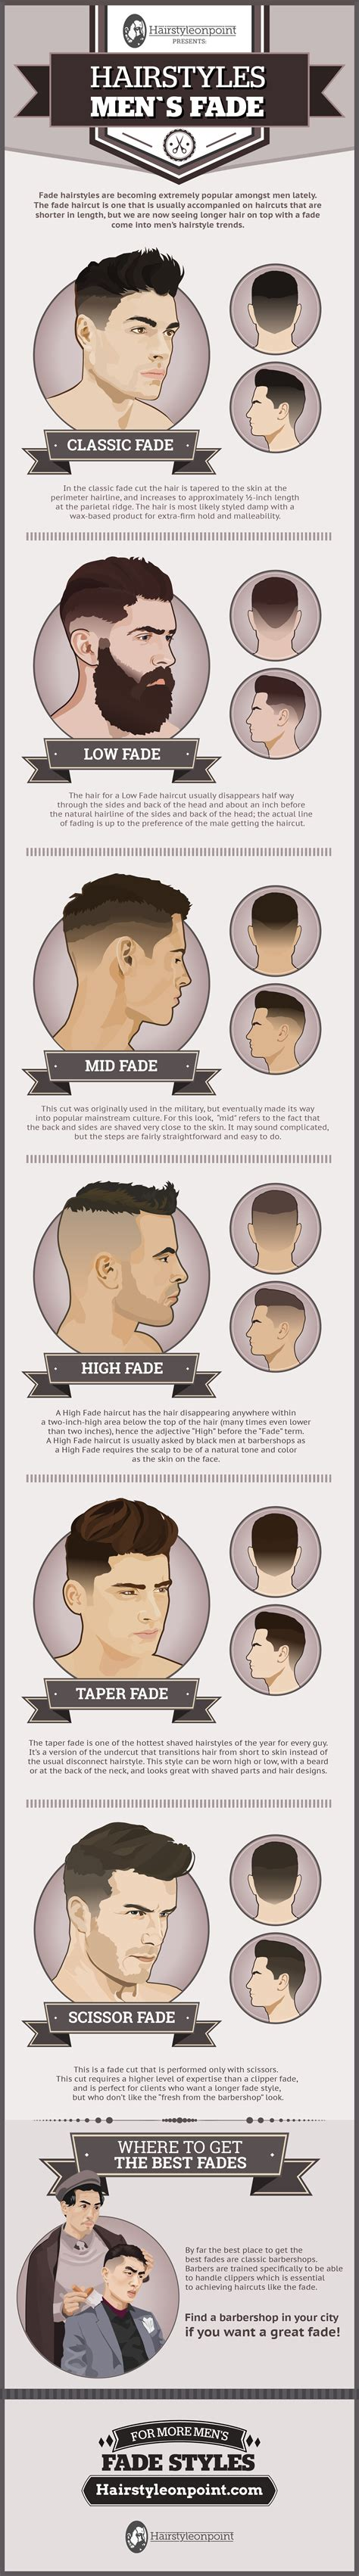 boys hairstyle guide men s hairstyles a simple guide to popular and modern